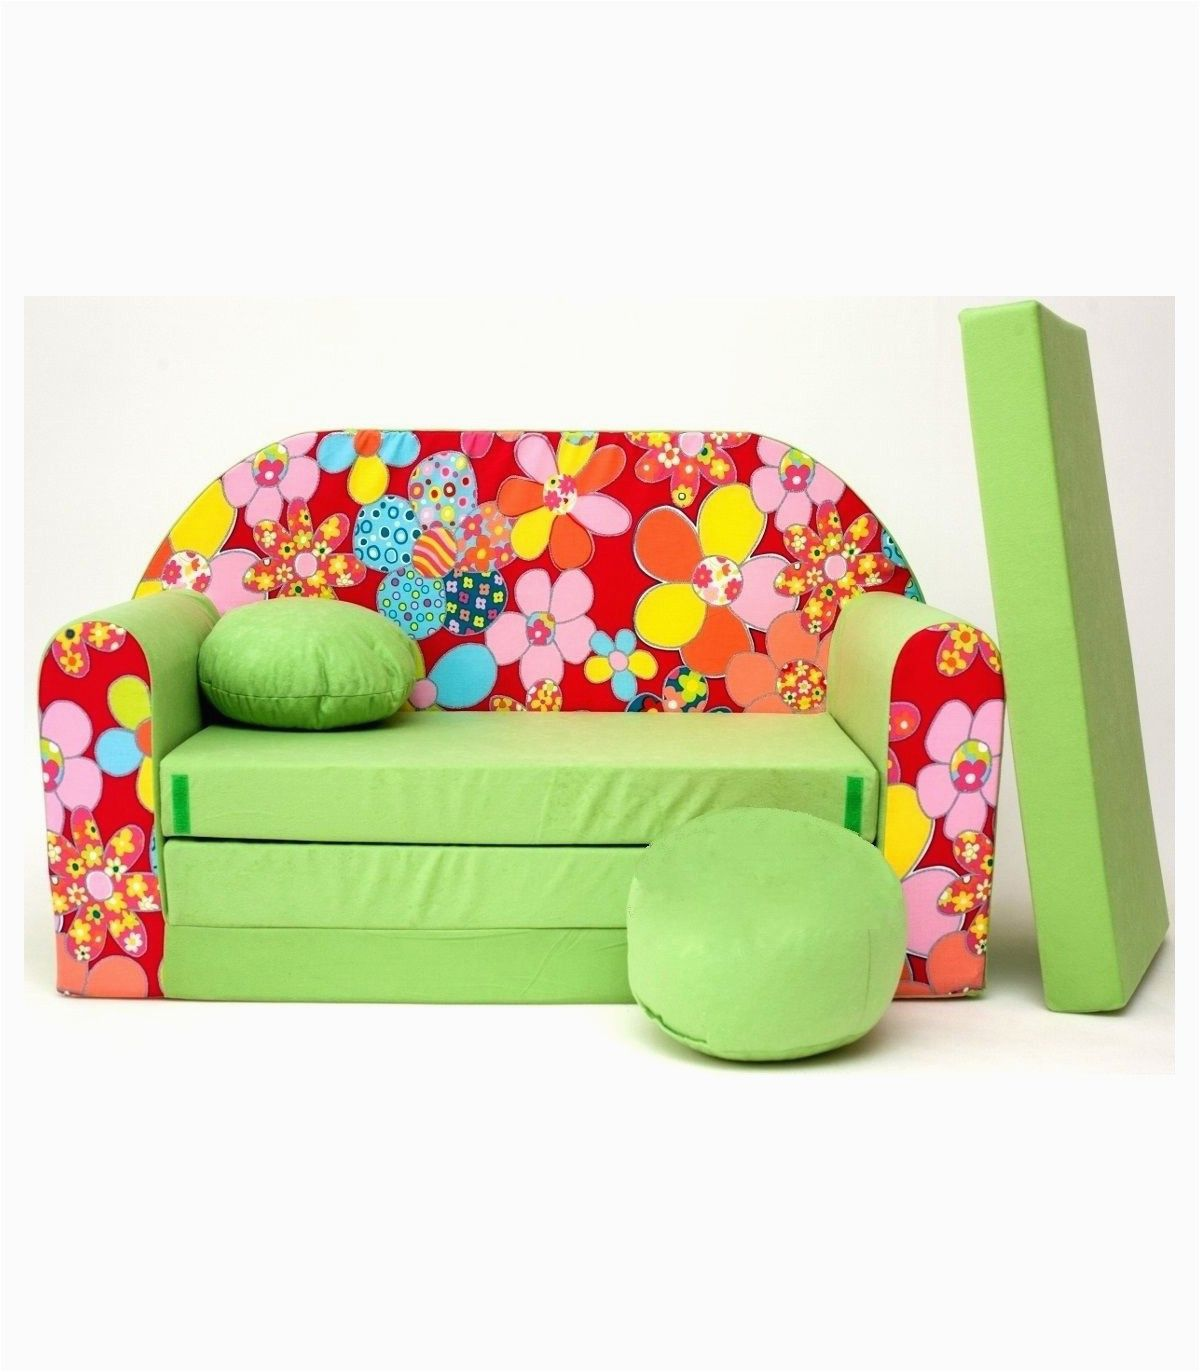 Sofa Beds for Childrens Bedrooms in 4  Sofa bed mattress